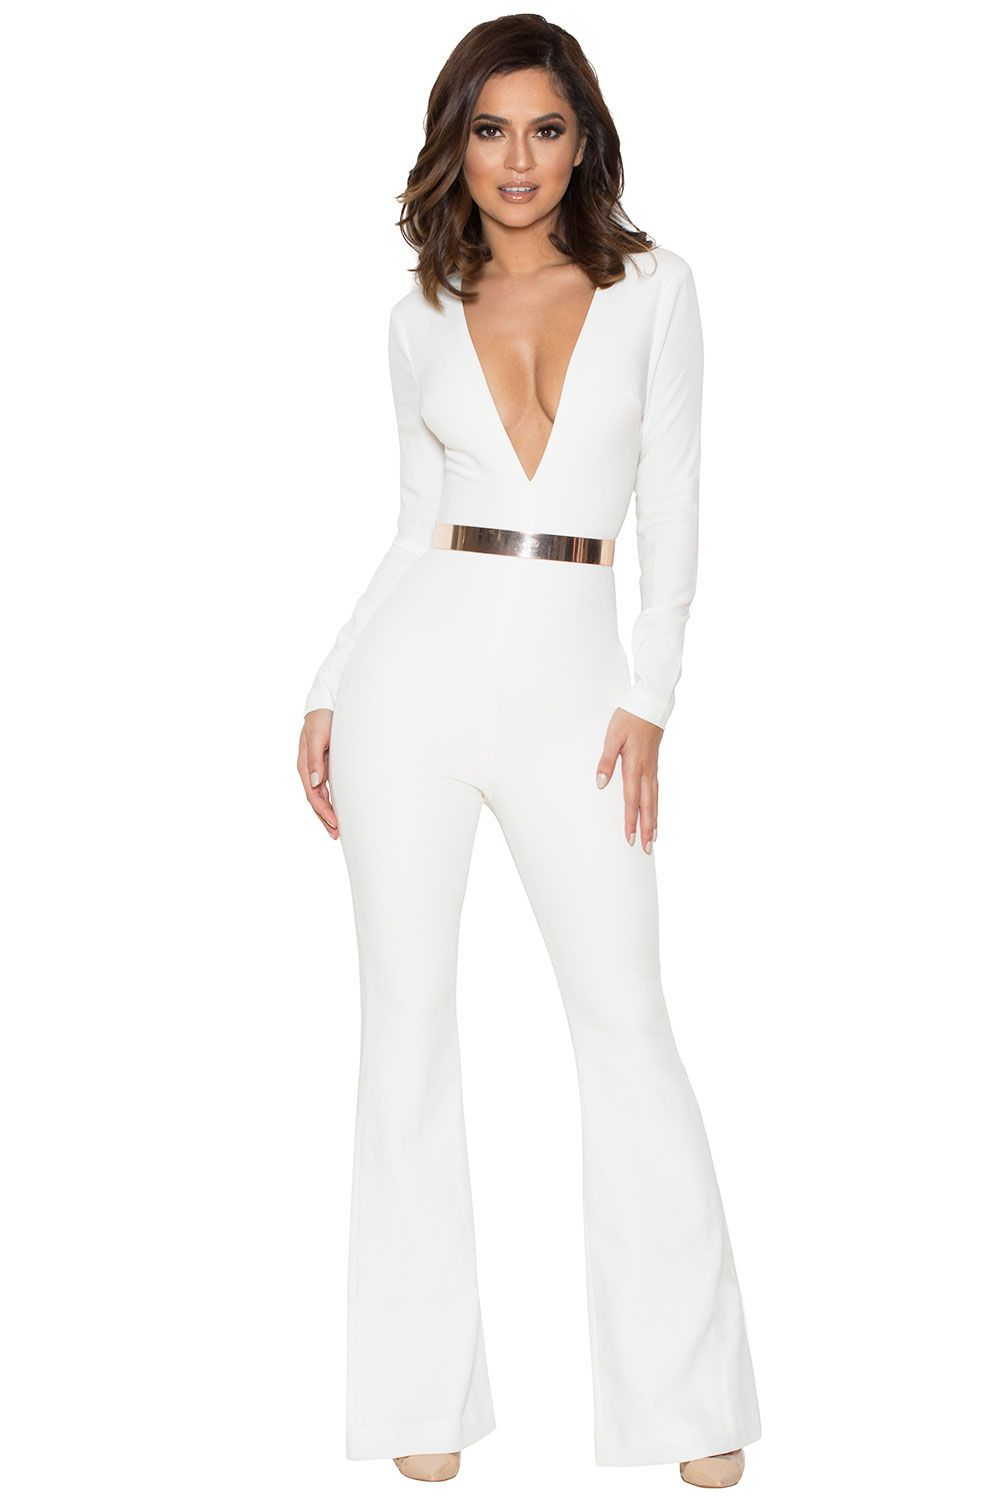 09f023b43a9c Clothing jumpsuits catalin white deep jumpsuit all white jpg 1000x1500 All white  party jumpsuits